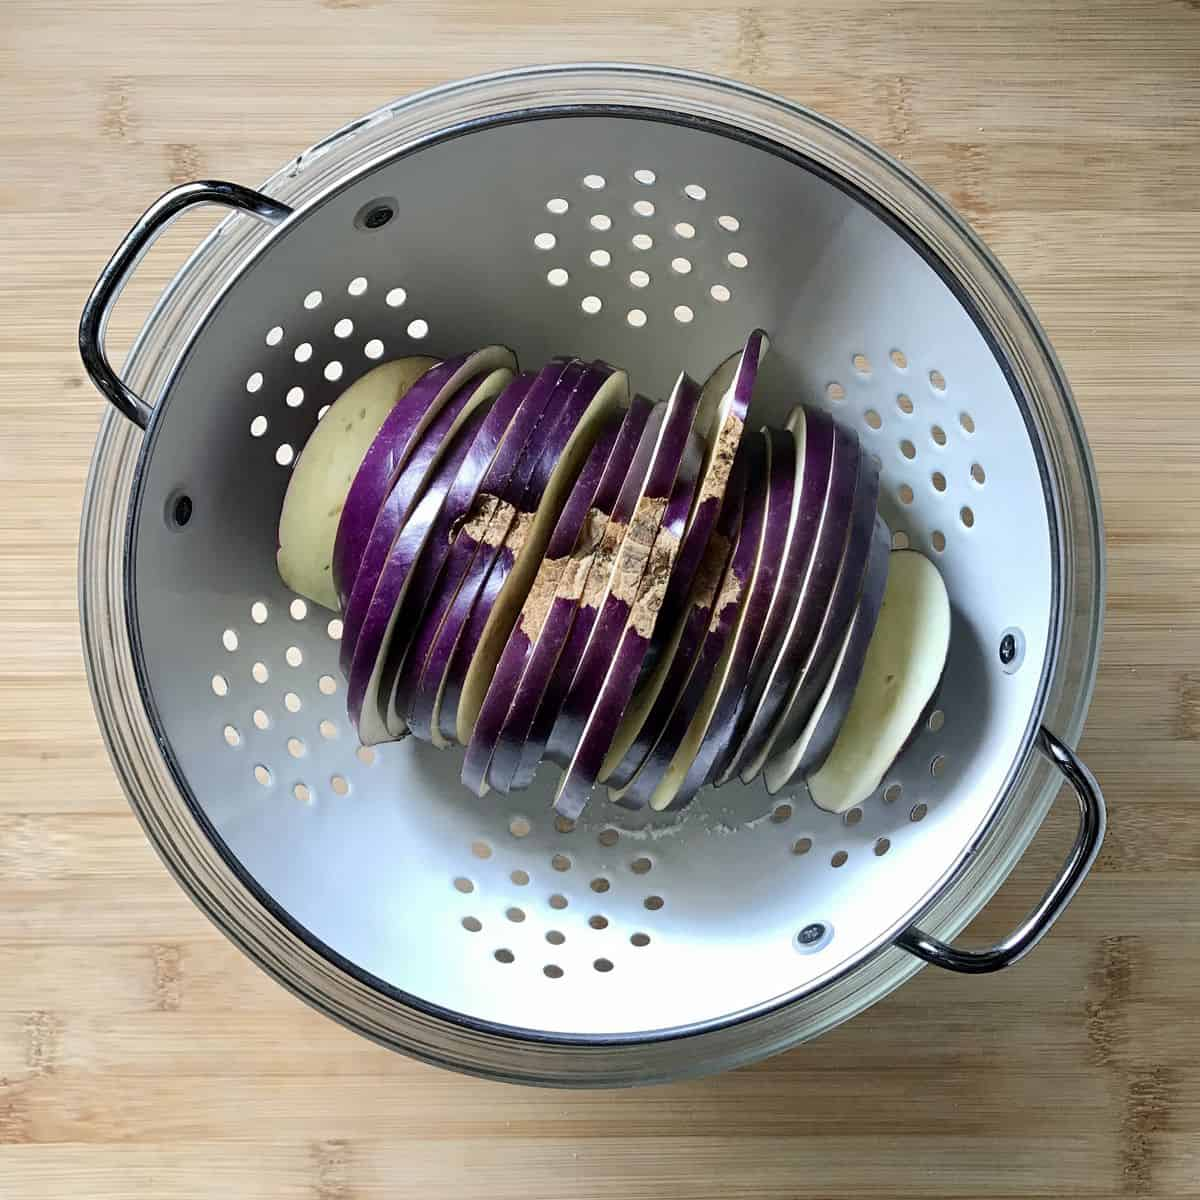 Slices of eggplant in a colander.